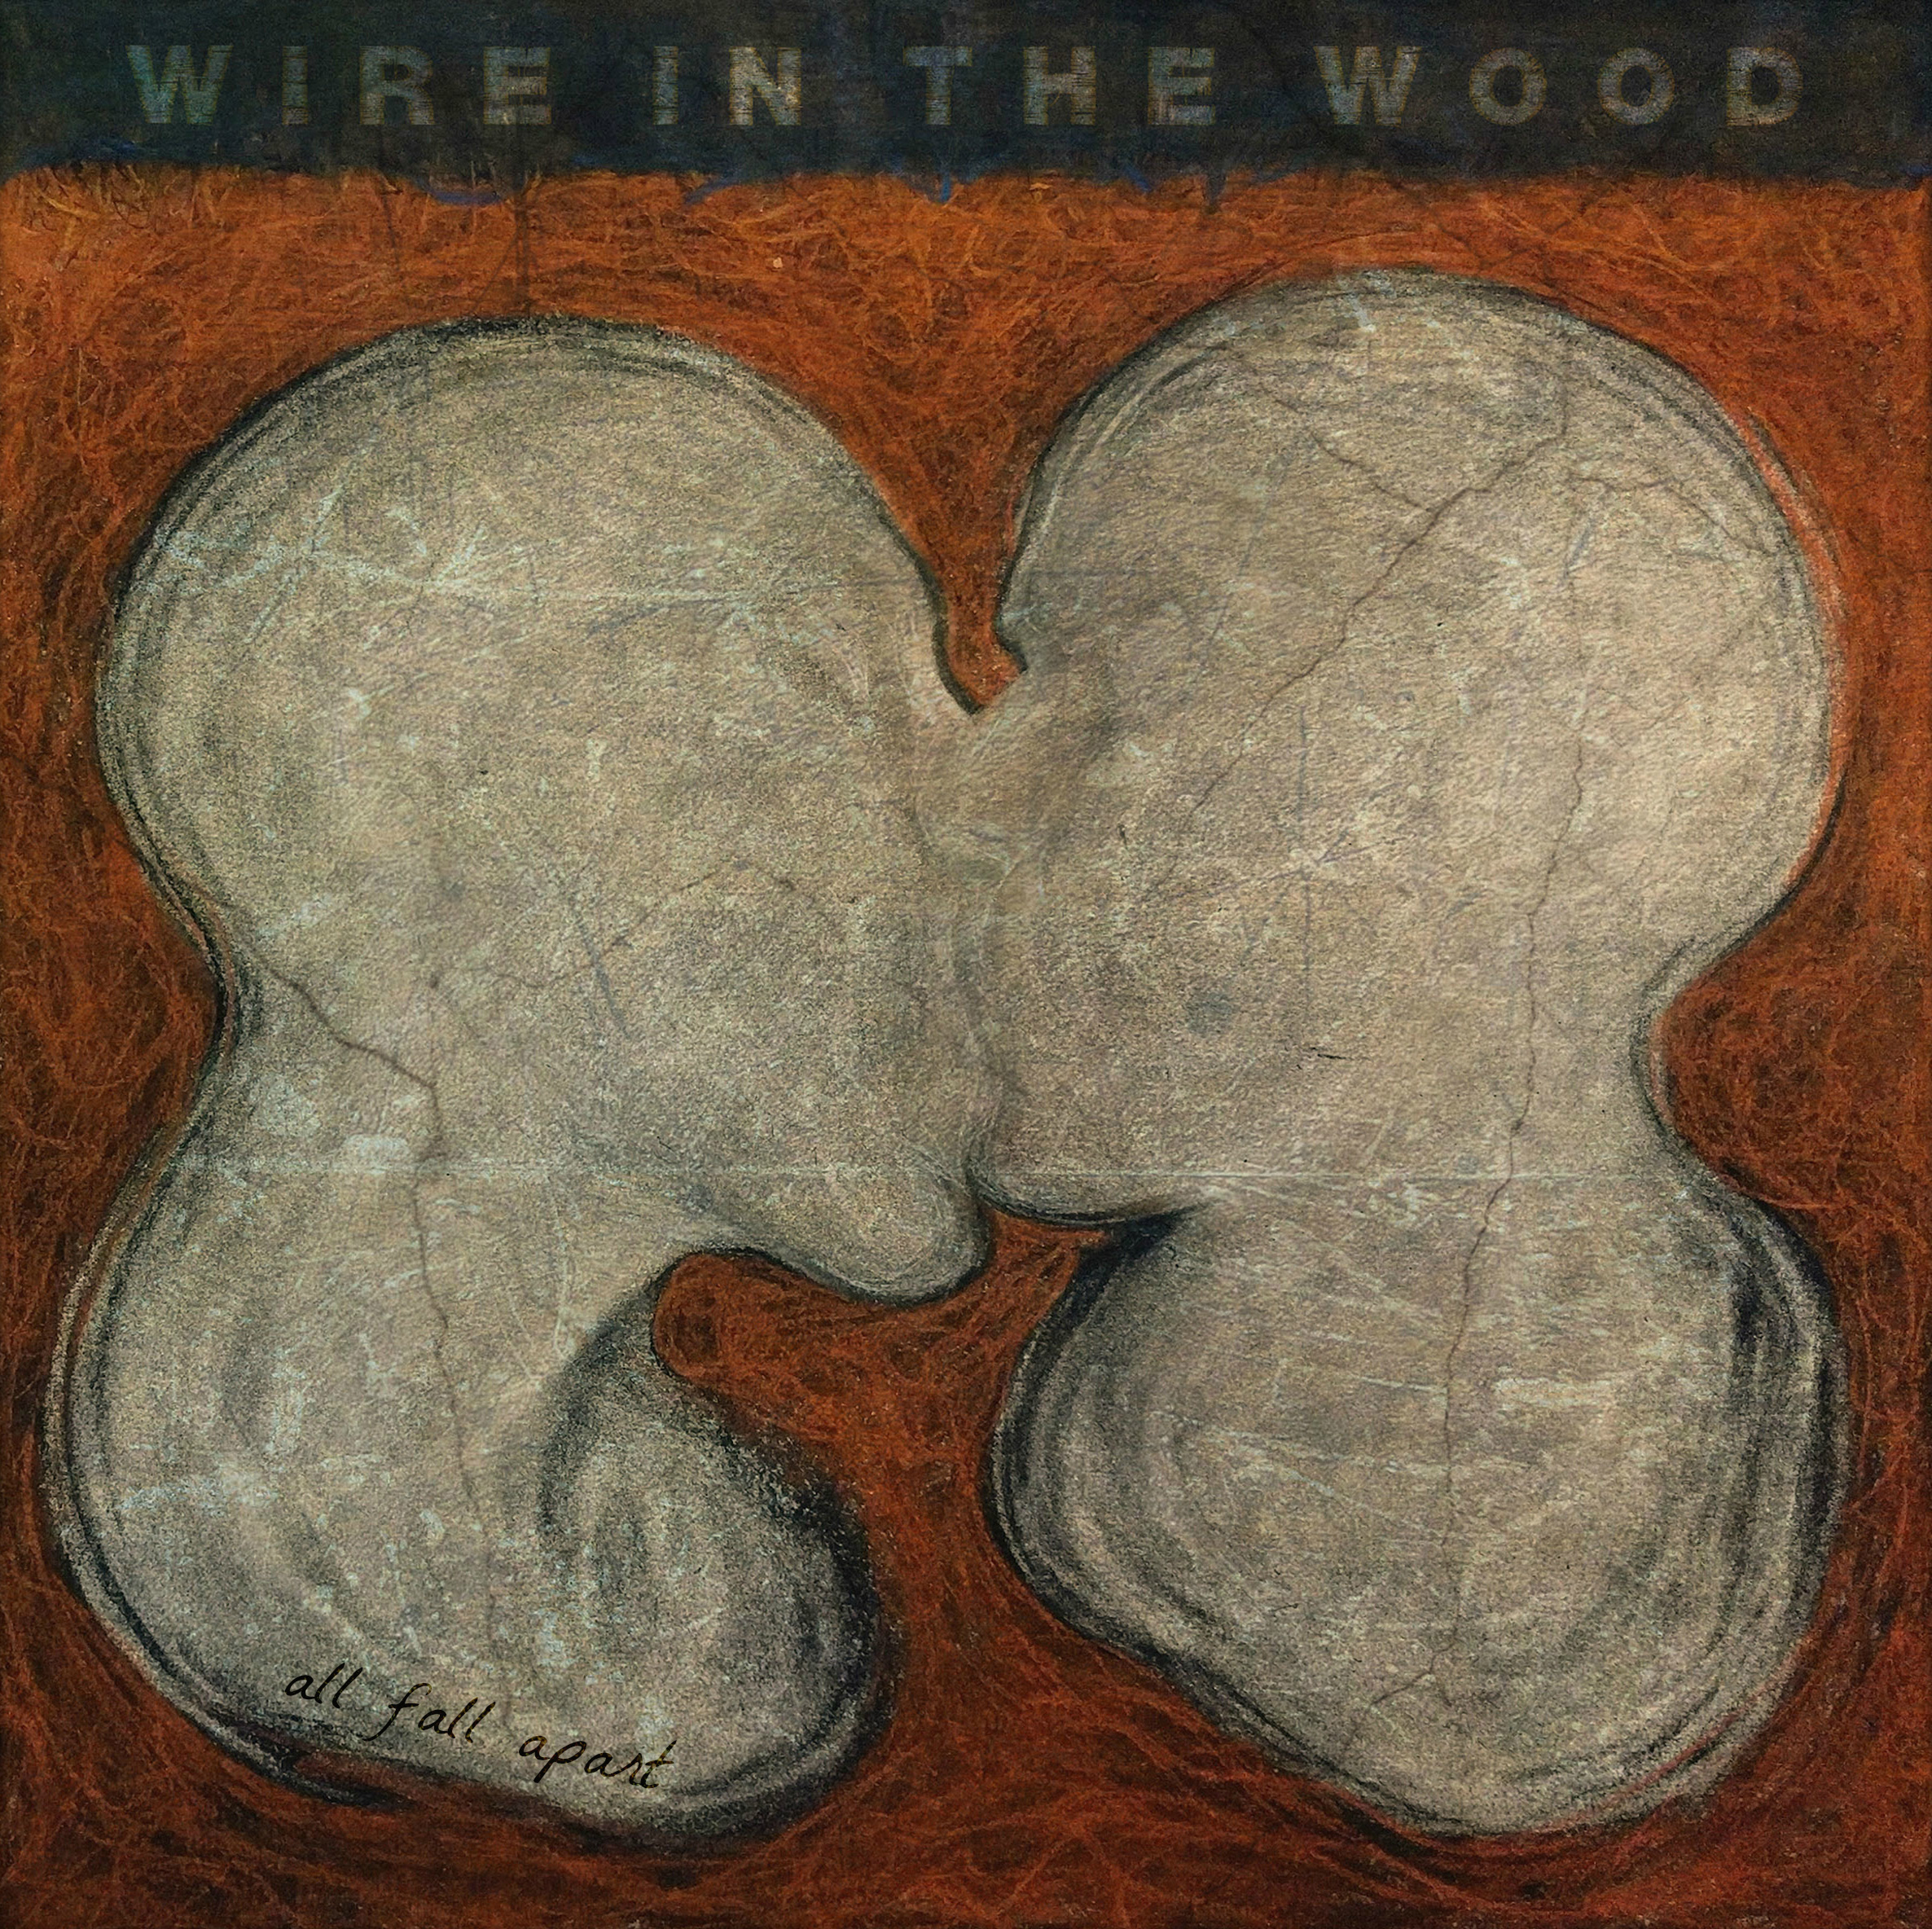 Wire in the Wood, Progressive String Band